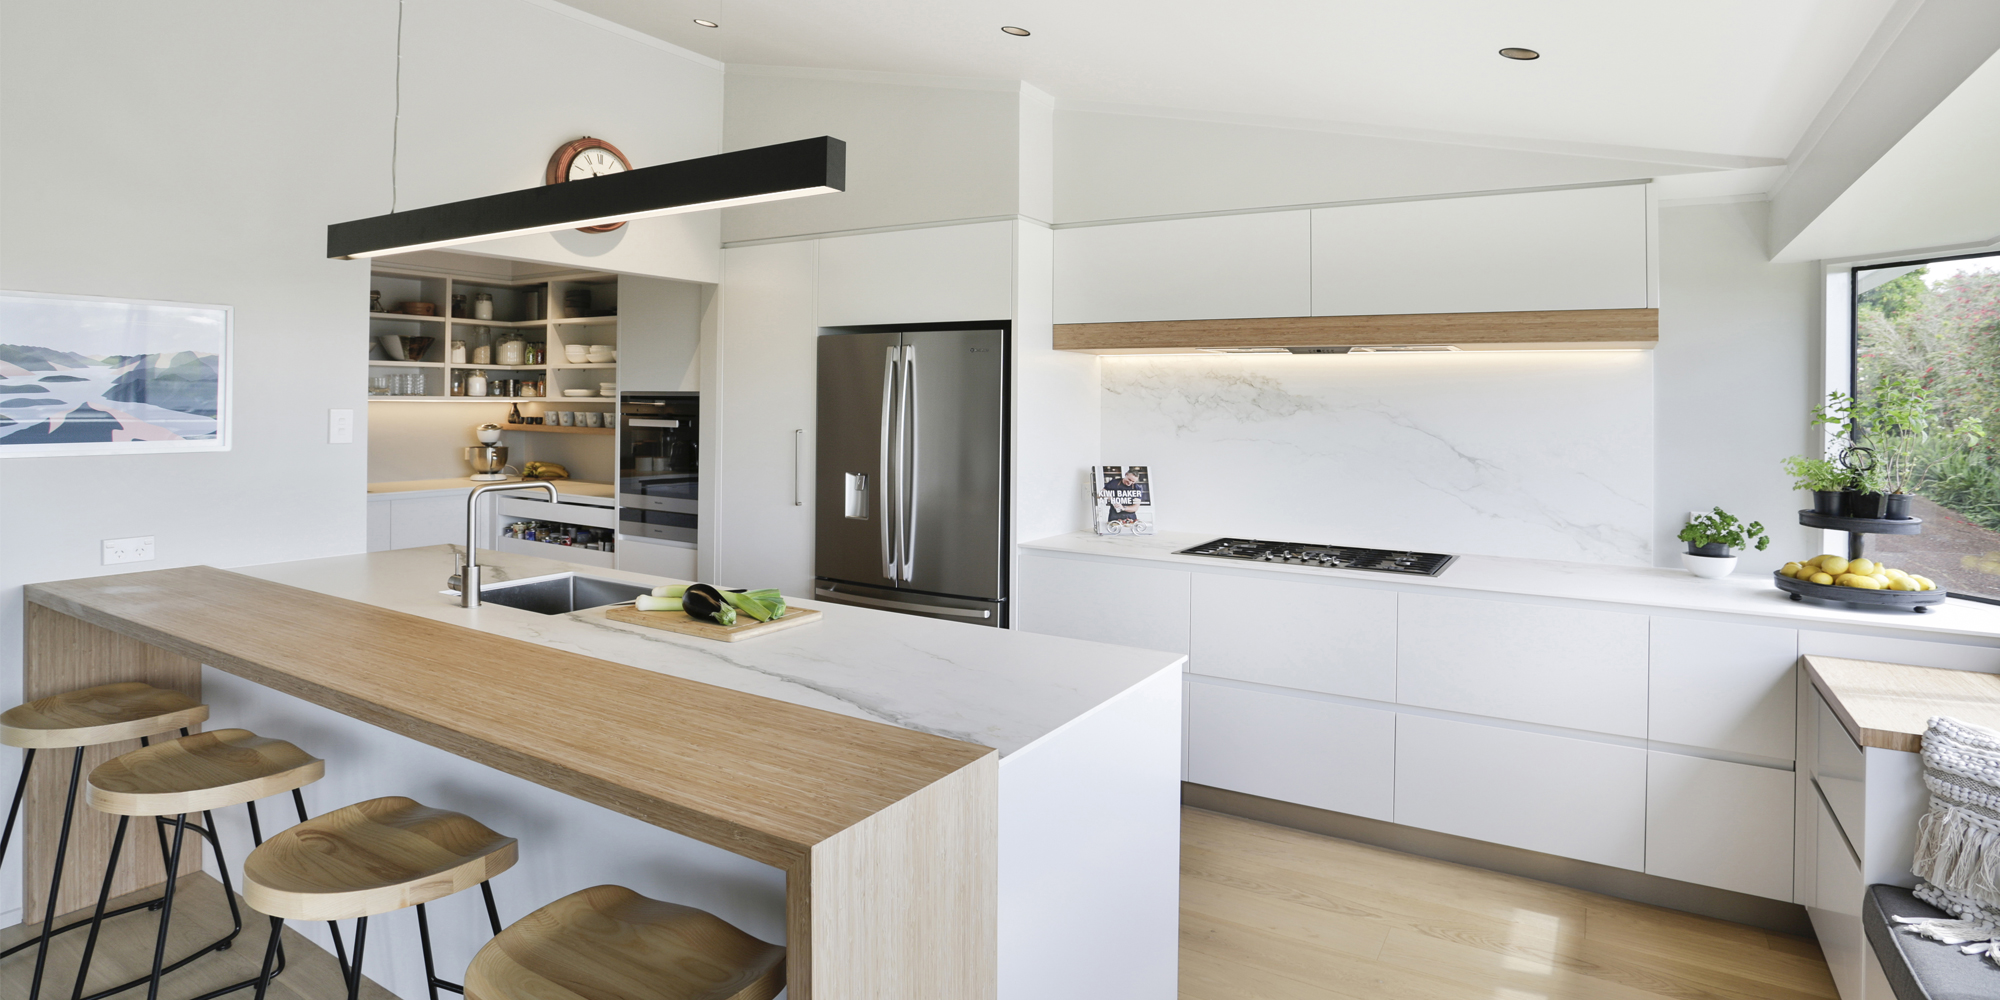 KBD-Chatswood-Kitchen-1.jpg